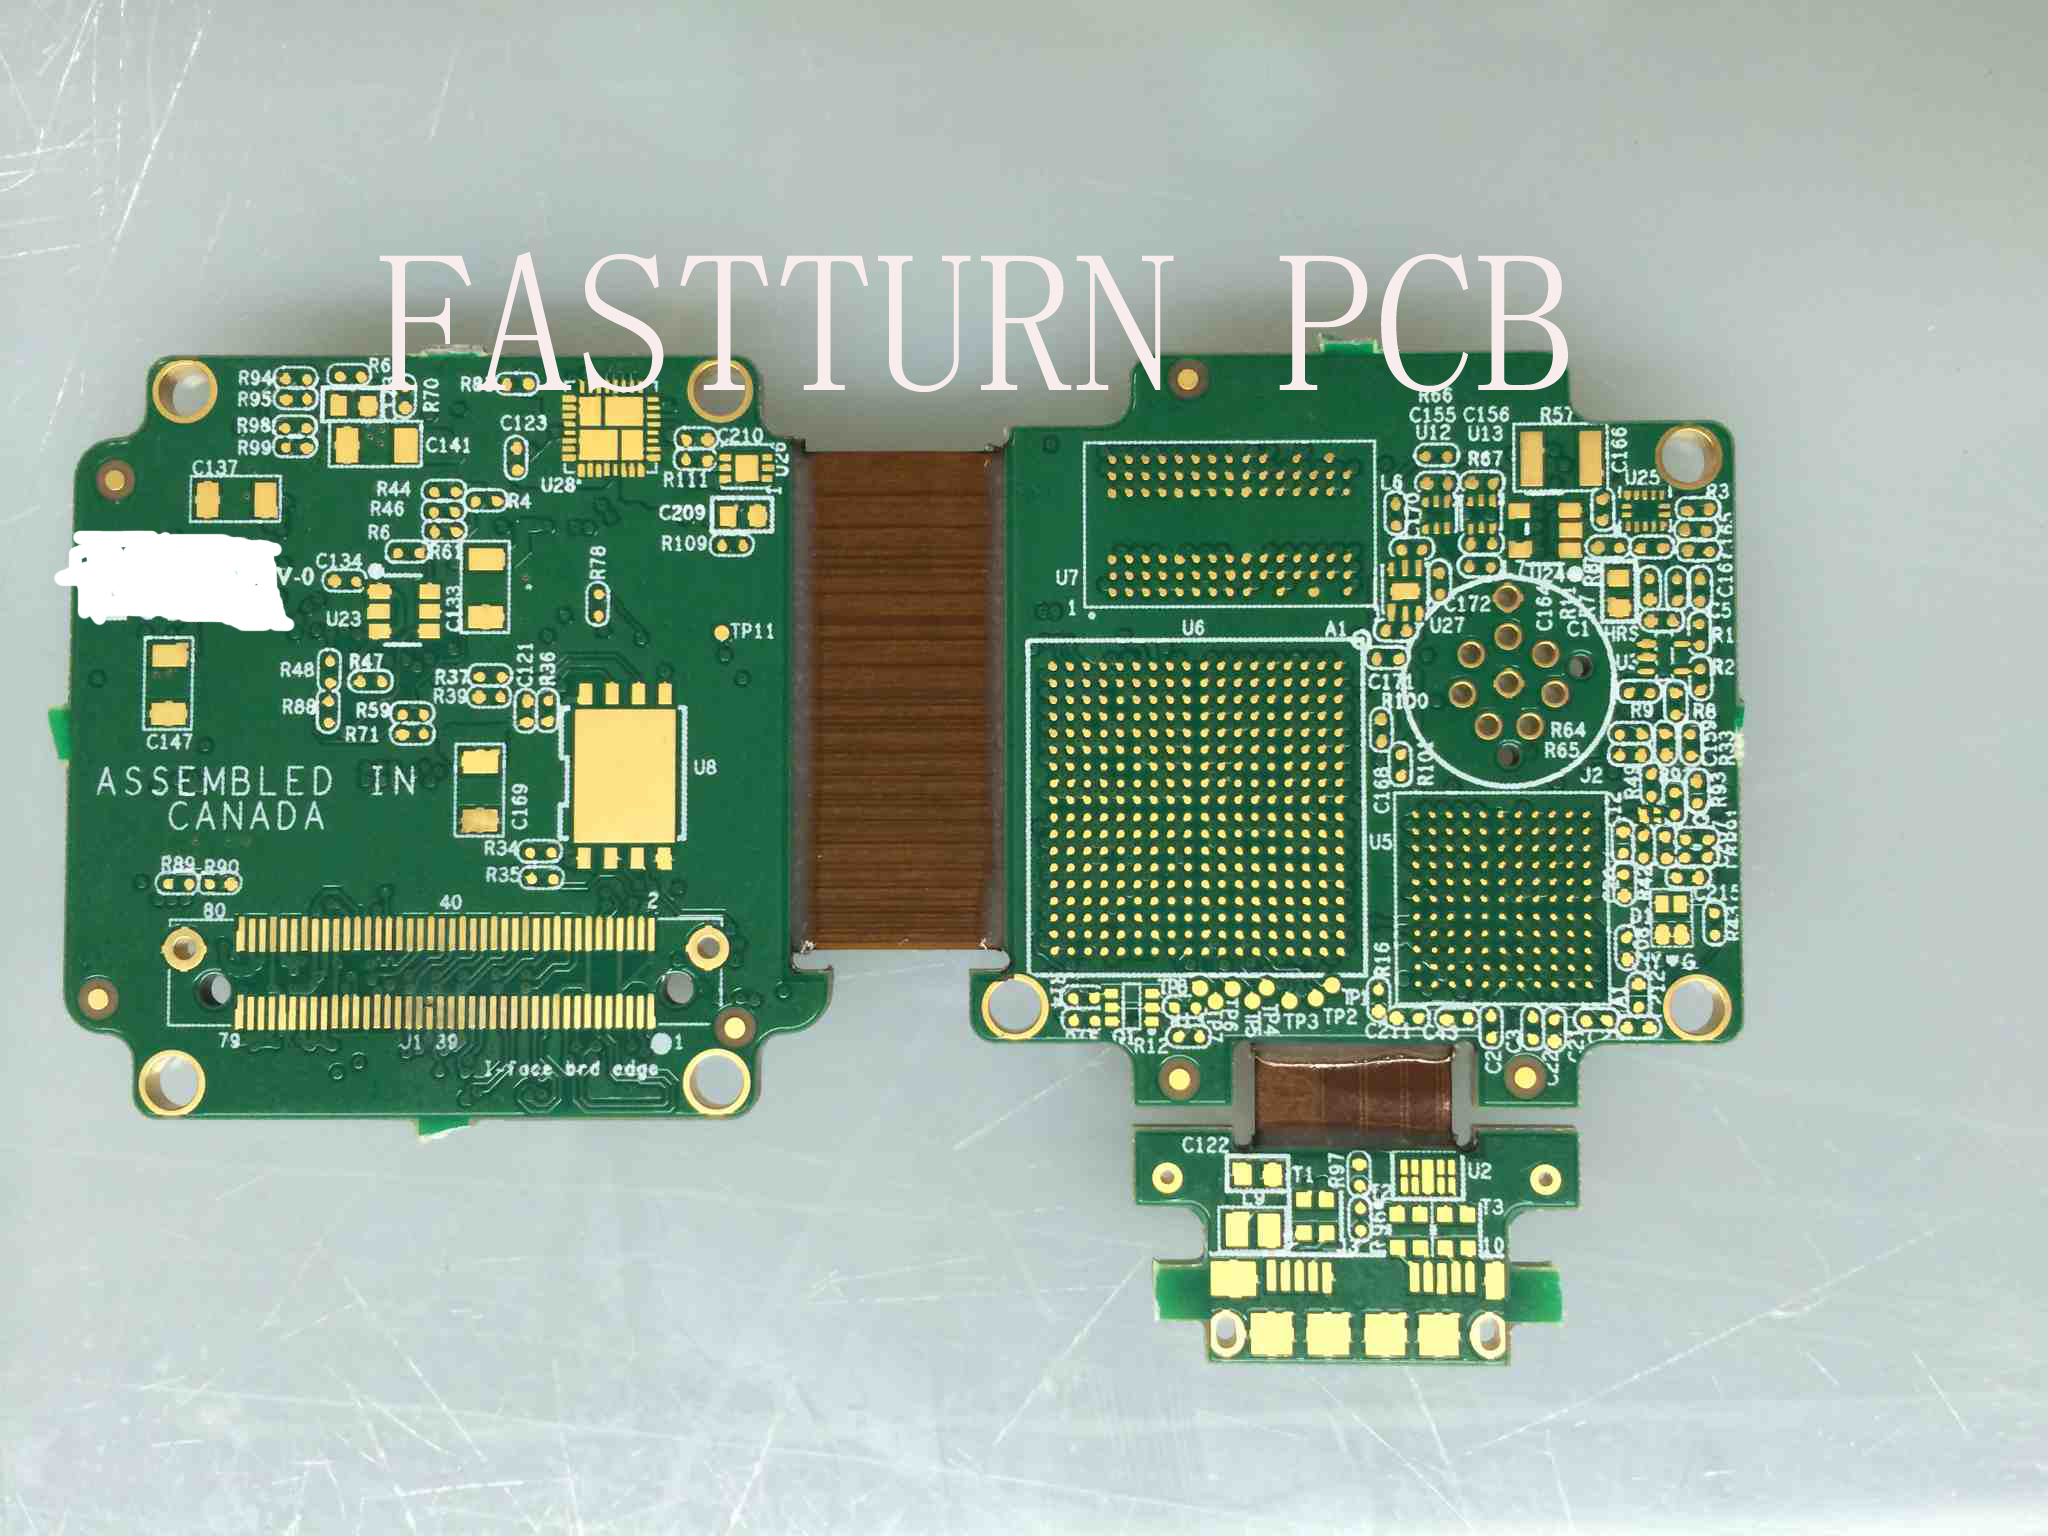 Fast Turn Pcb Company Limited Ompanies Layer Polimide Flexible Printed Circuit Board Manufacturers Custom Professional Rigid Flex Shop